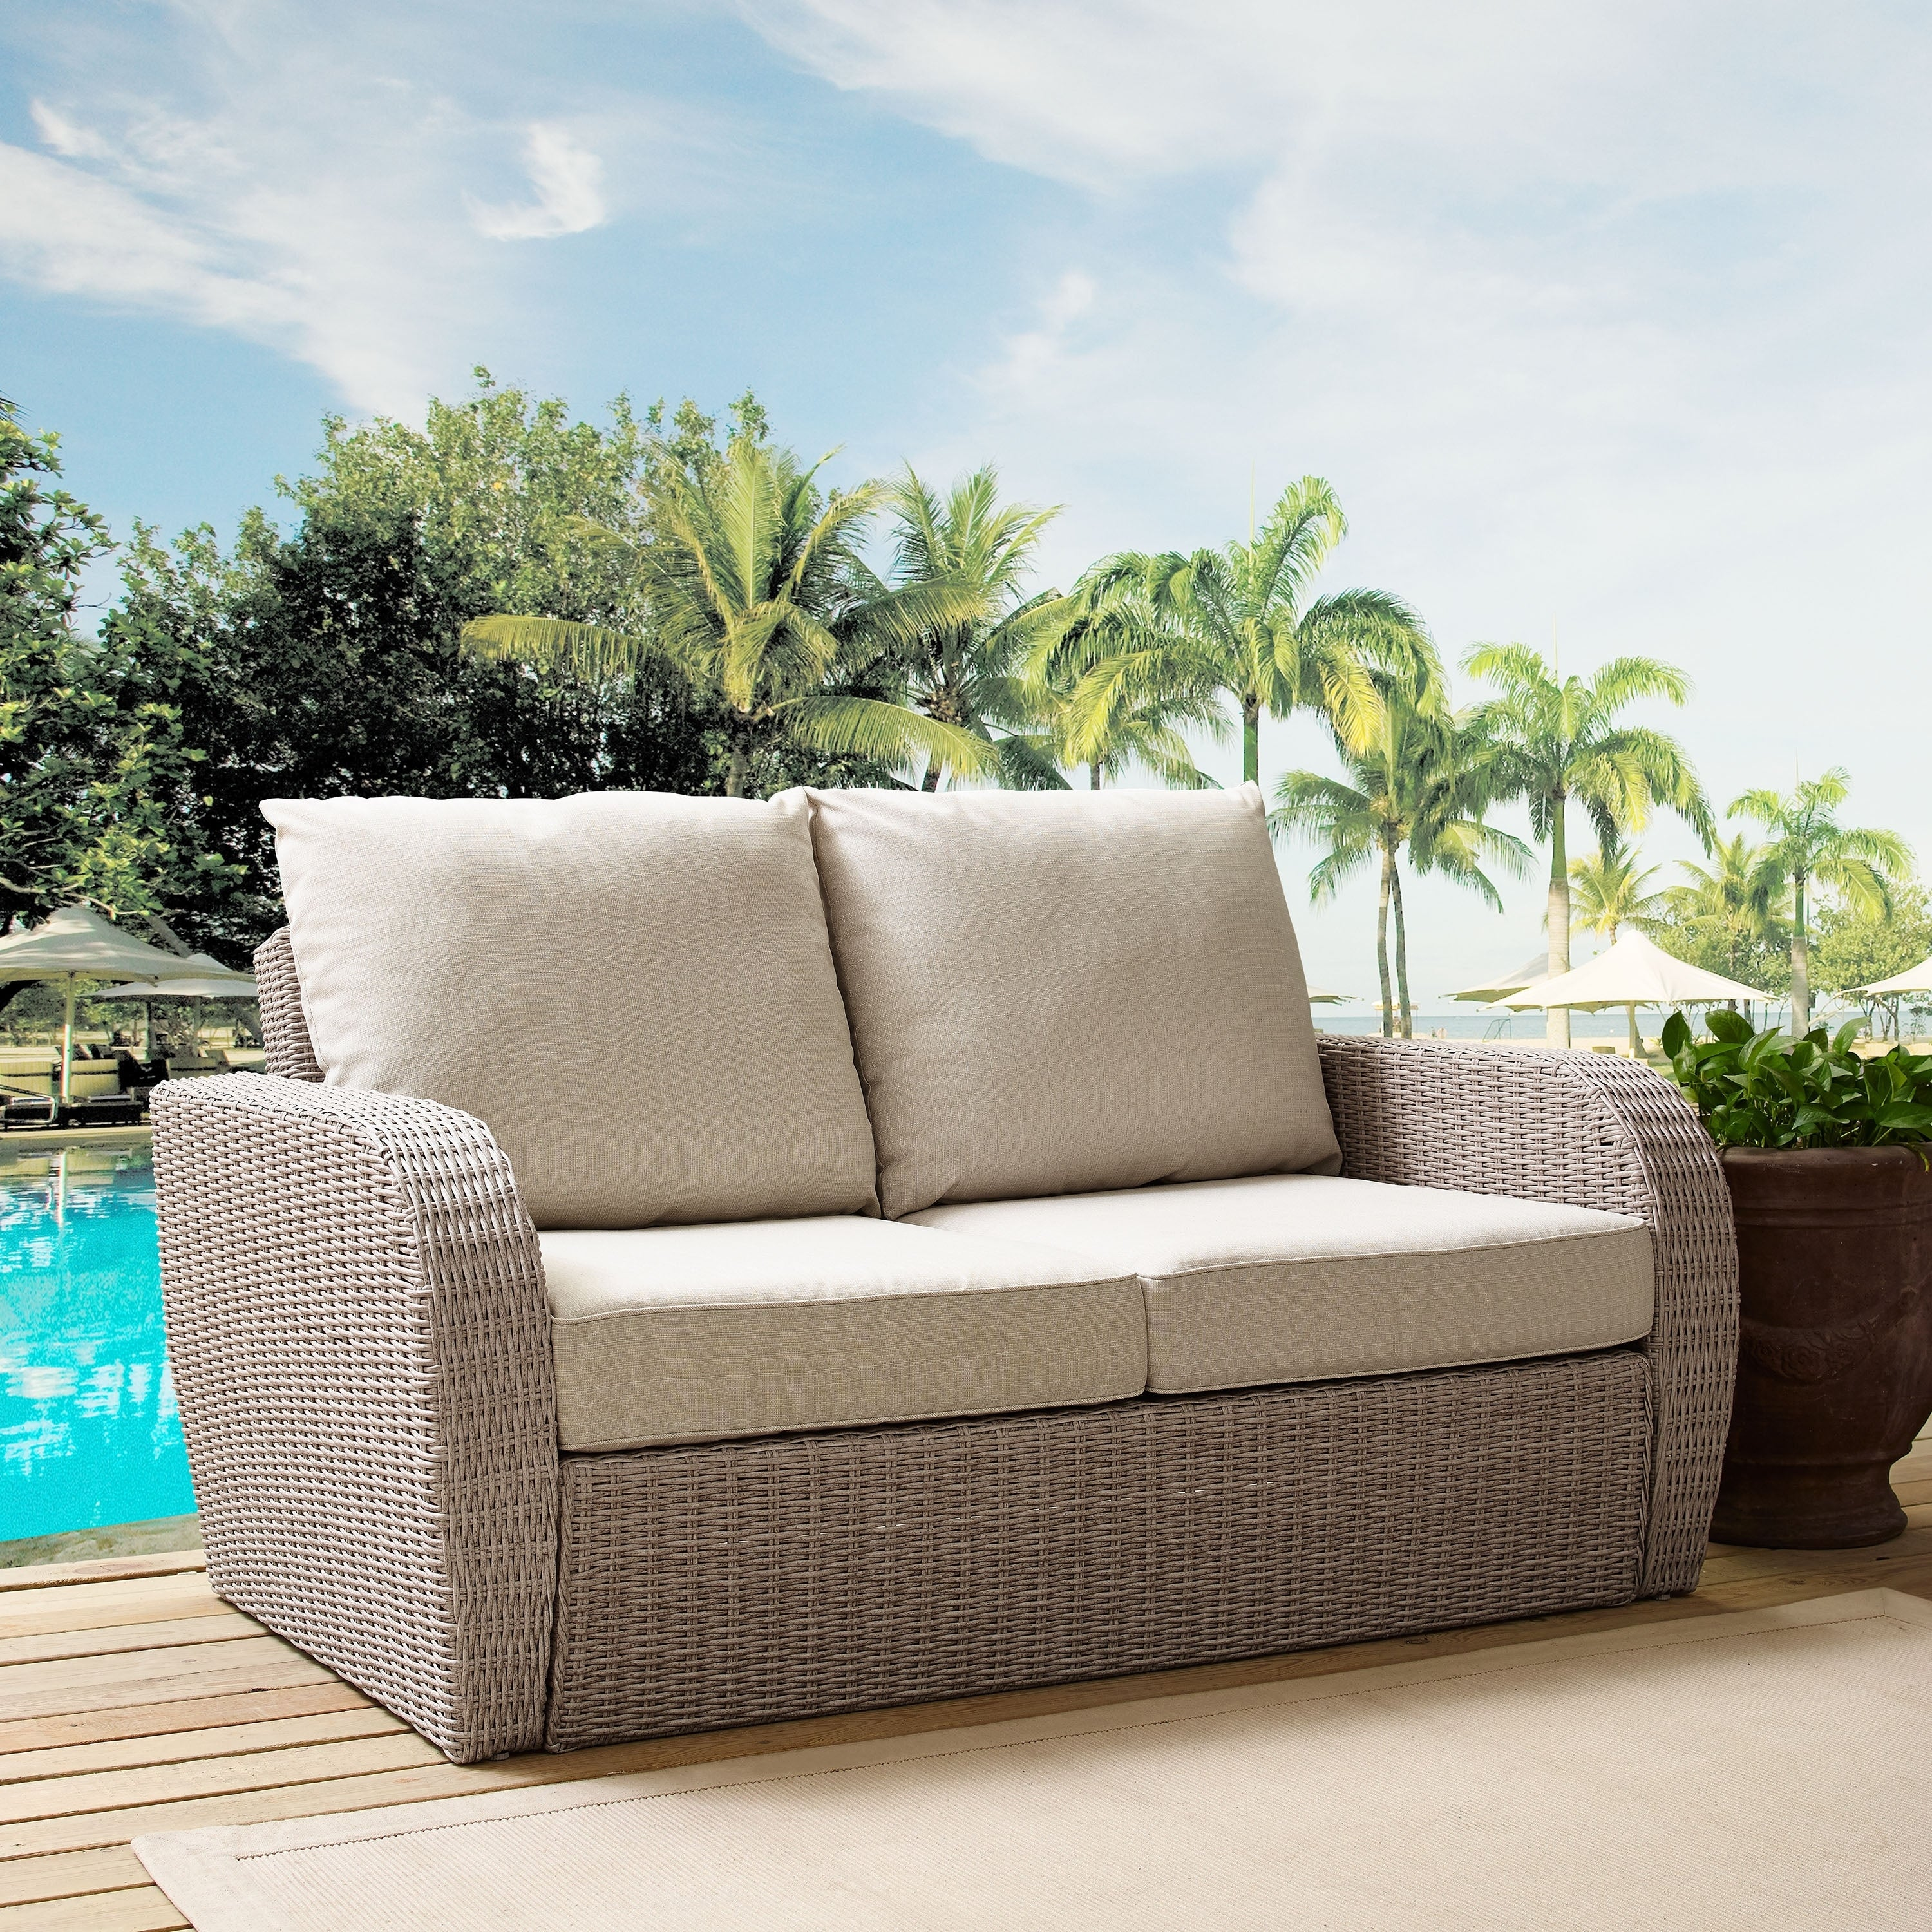 Surprising St Augustine Outdoor Wicker Loveseat In Weathered White With Universal Oatmeal Cushion Ocoug Best Dining Table And Chair Ideas Images Ocougorg